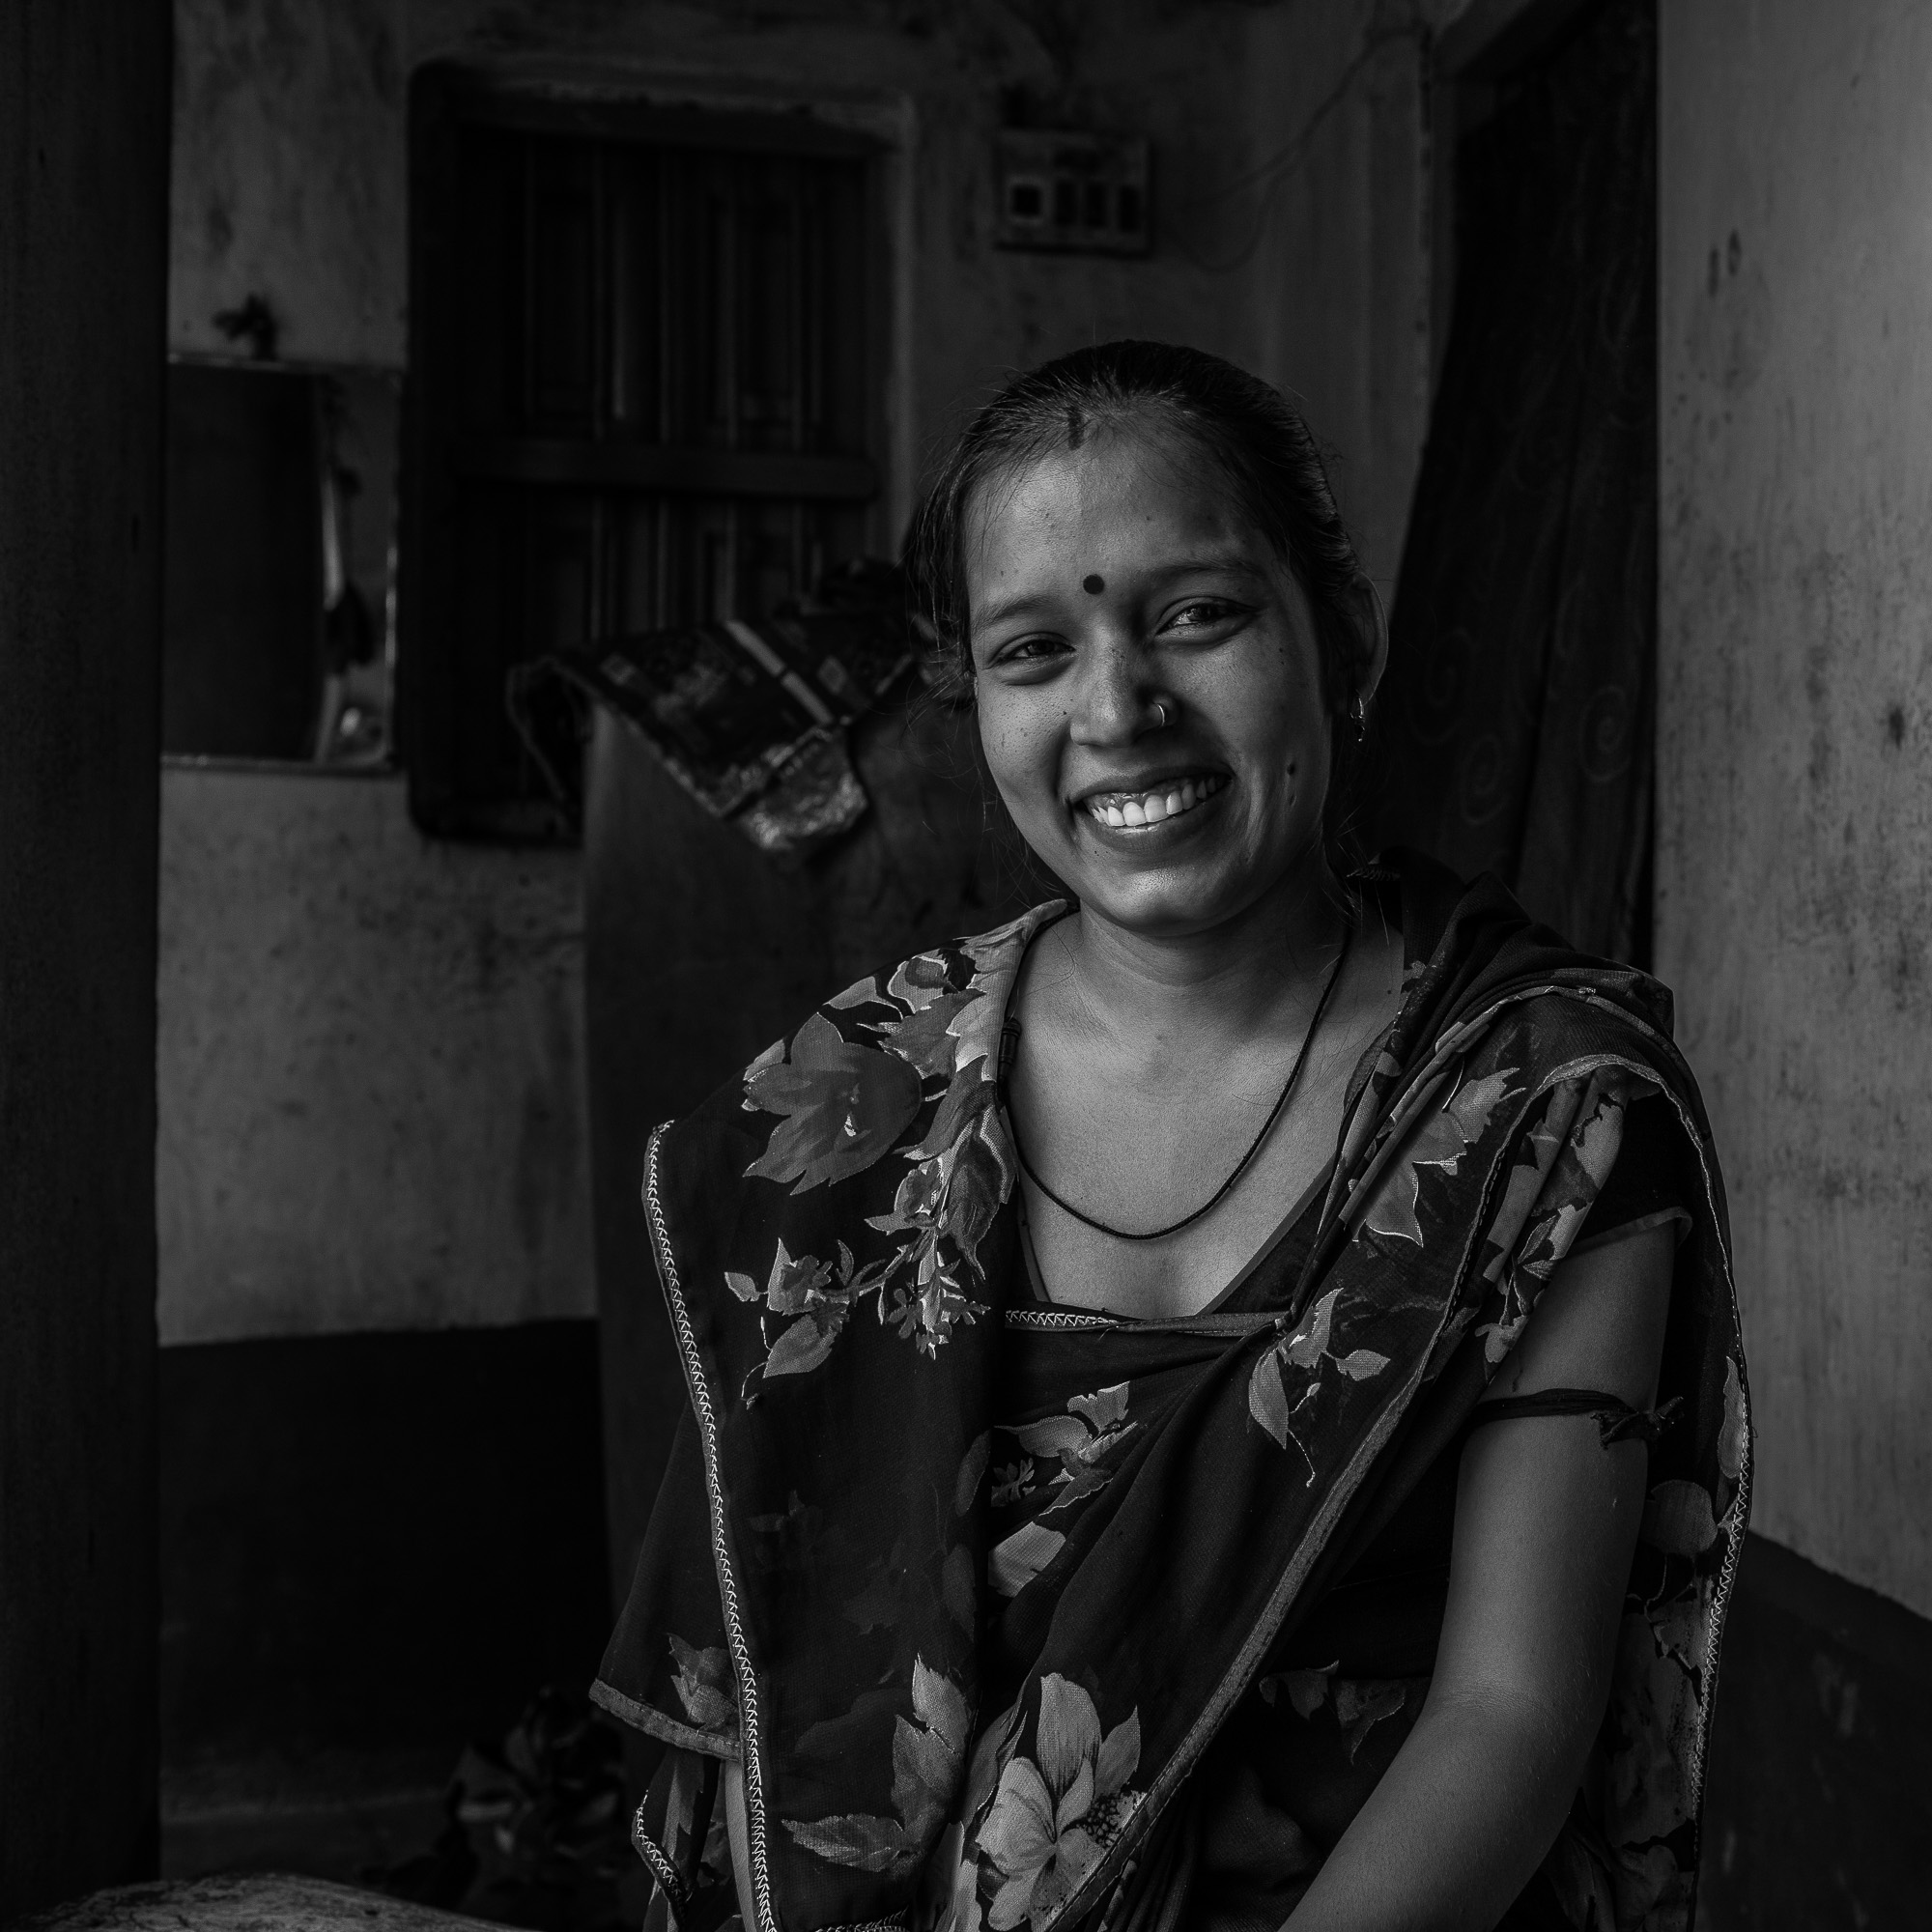 PATNA, BIHAR, INDIA: April 17, 2017 - Bihar is one of India's largest and poorest states with over 100 million people. Poor nutrition and poor health, particularly for women and children, lead to early deaths and generational cycles of lost potential. The state has one of the country's highest rates of maternal, neonatal and infant mortality. Underlying factors that contribute to these negative health outcomes primarily include extreme poverty, gender and social inequality among many others. Recognizing these persistent gaps, the Integrated Family Health Initiative (IFHI) project was launched in 2011 to address these disparities with support from the Bill and Melinda Gates Foundation. IFHI's objective is to support the Government of Bihar in increasing the universal coverage and quality of life‐saving interventions and improve the health and survival of women, newborns and children during the first 1,000 days ‐ from conception to the child's second birthday. To reach this objective, IFHI implements a set of core, proven interventions, spanning the family health continuum of services, including maternal and newborn health, nutrition, immunization and family planning. Photo/Footage by Morgana Wingard for CARE